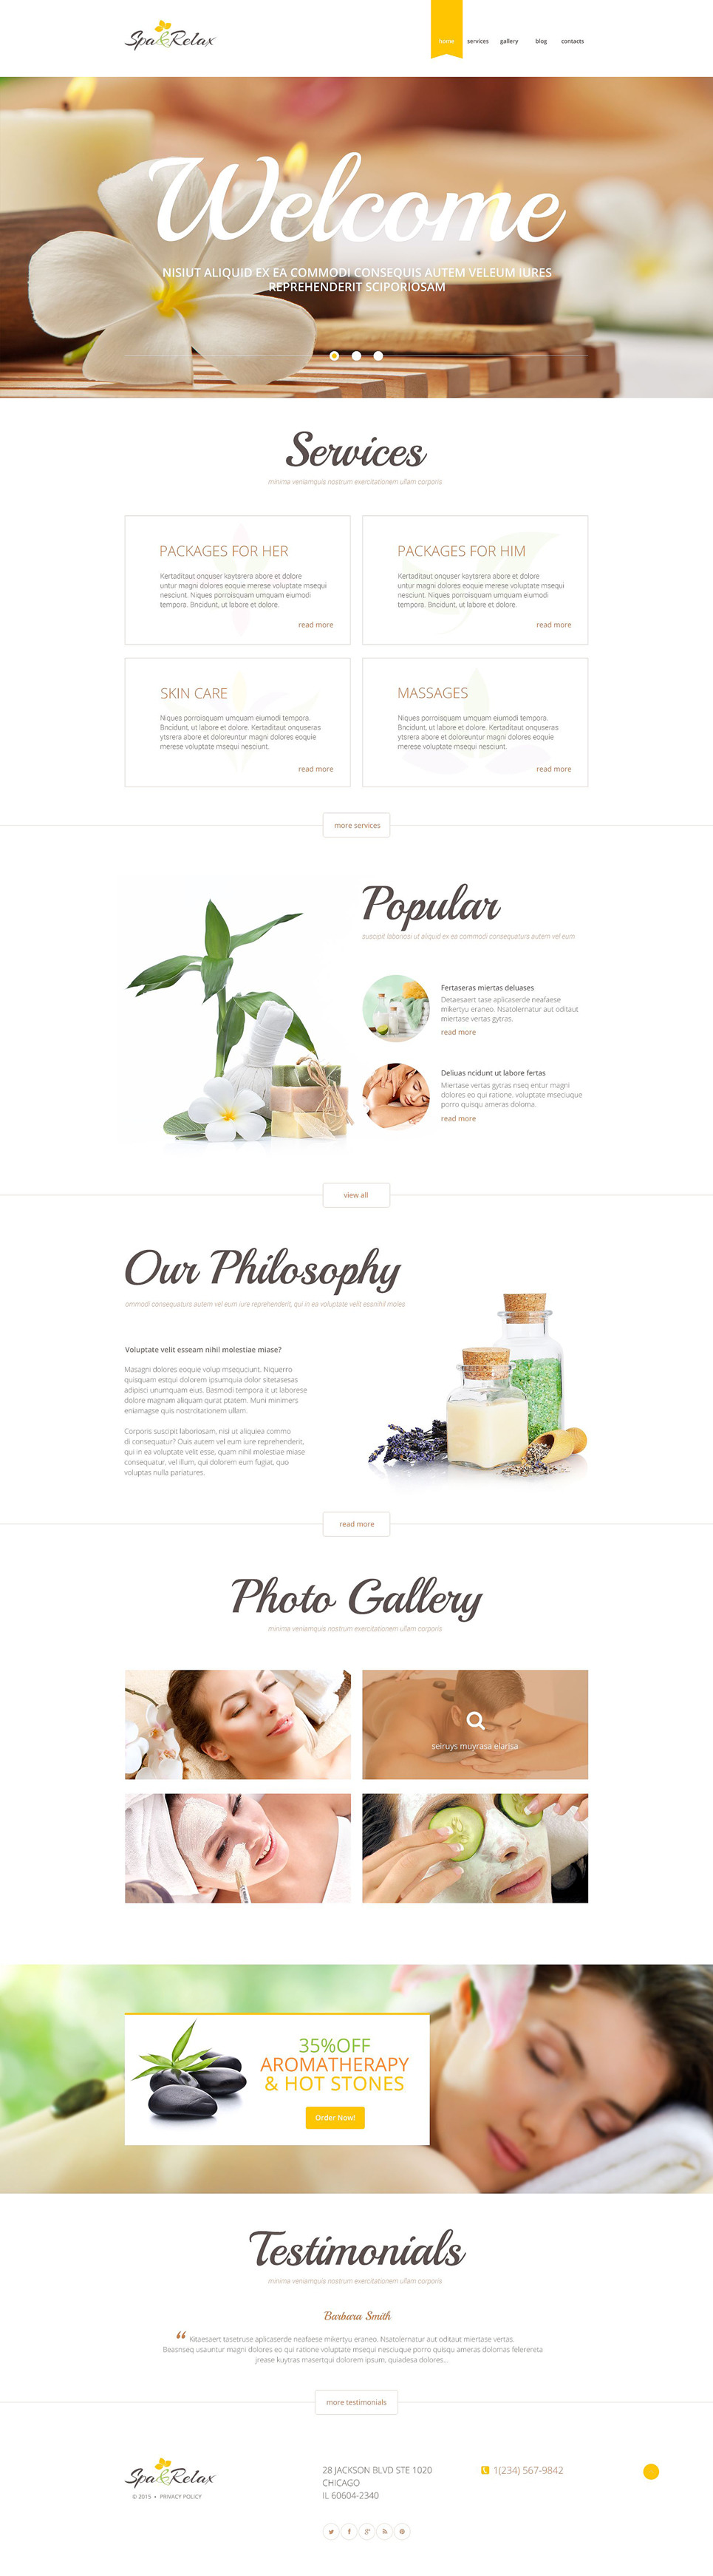 SPA Relax PSD Template New Screenshots BIG